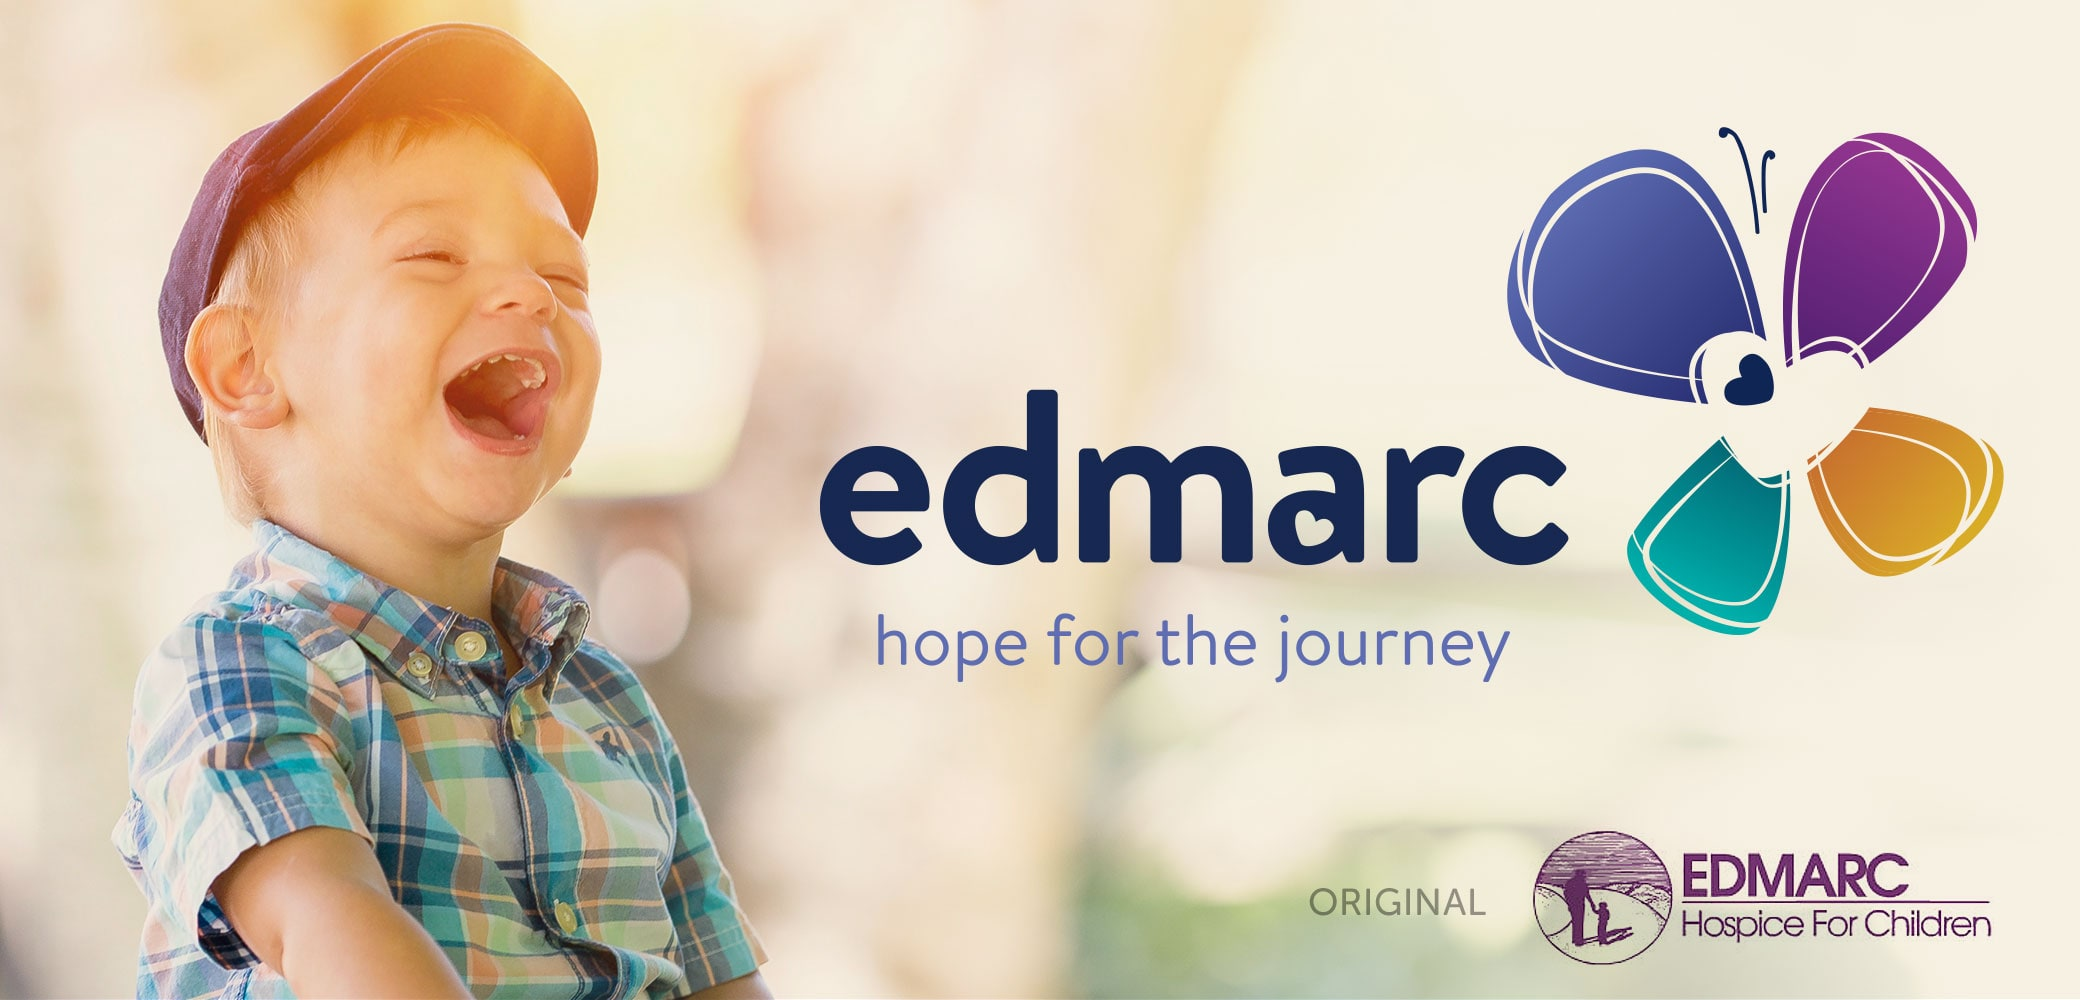 Edmarc Identity System Design by Red Chalk Studios